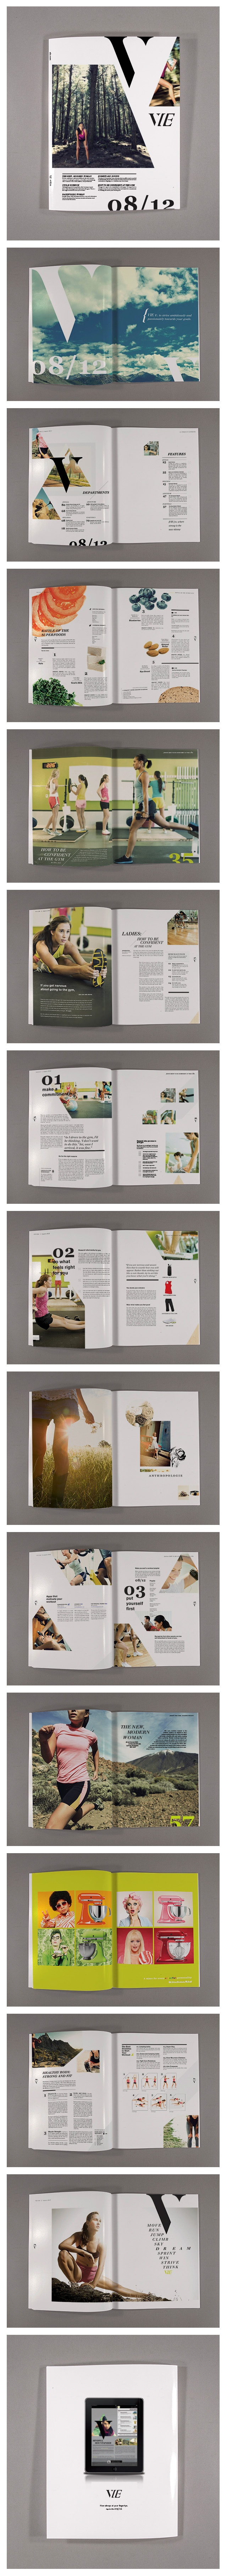 Vie #layout #publication #graphicdesign